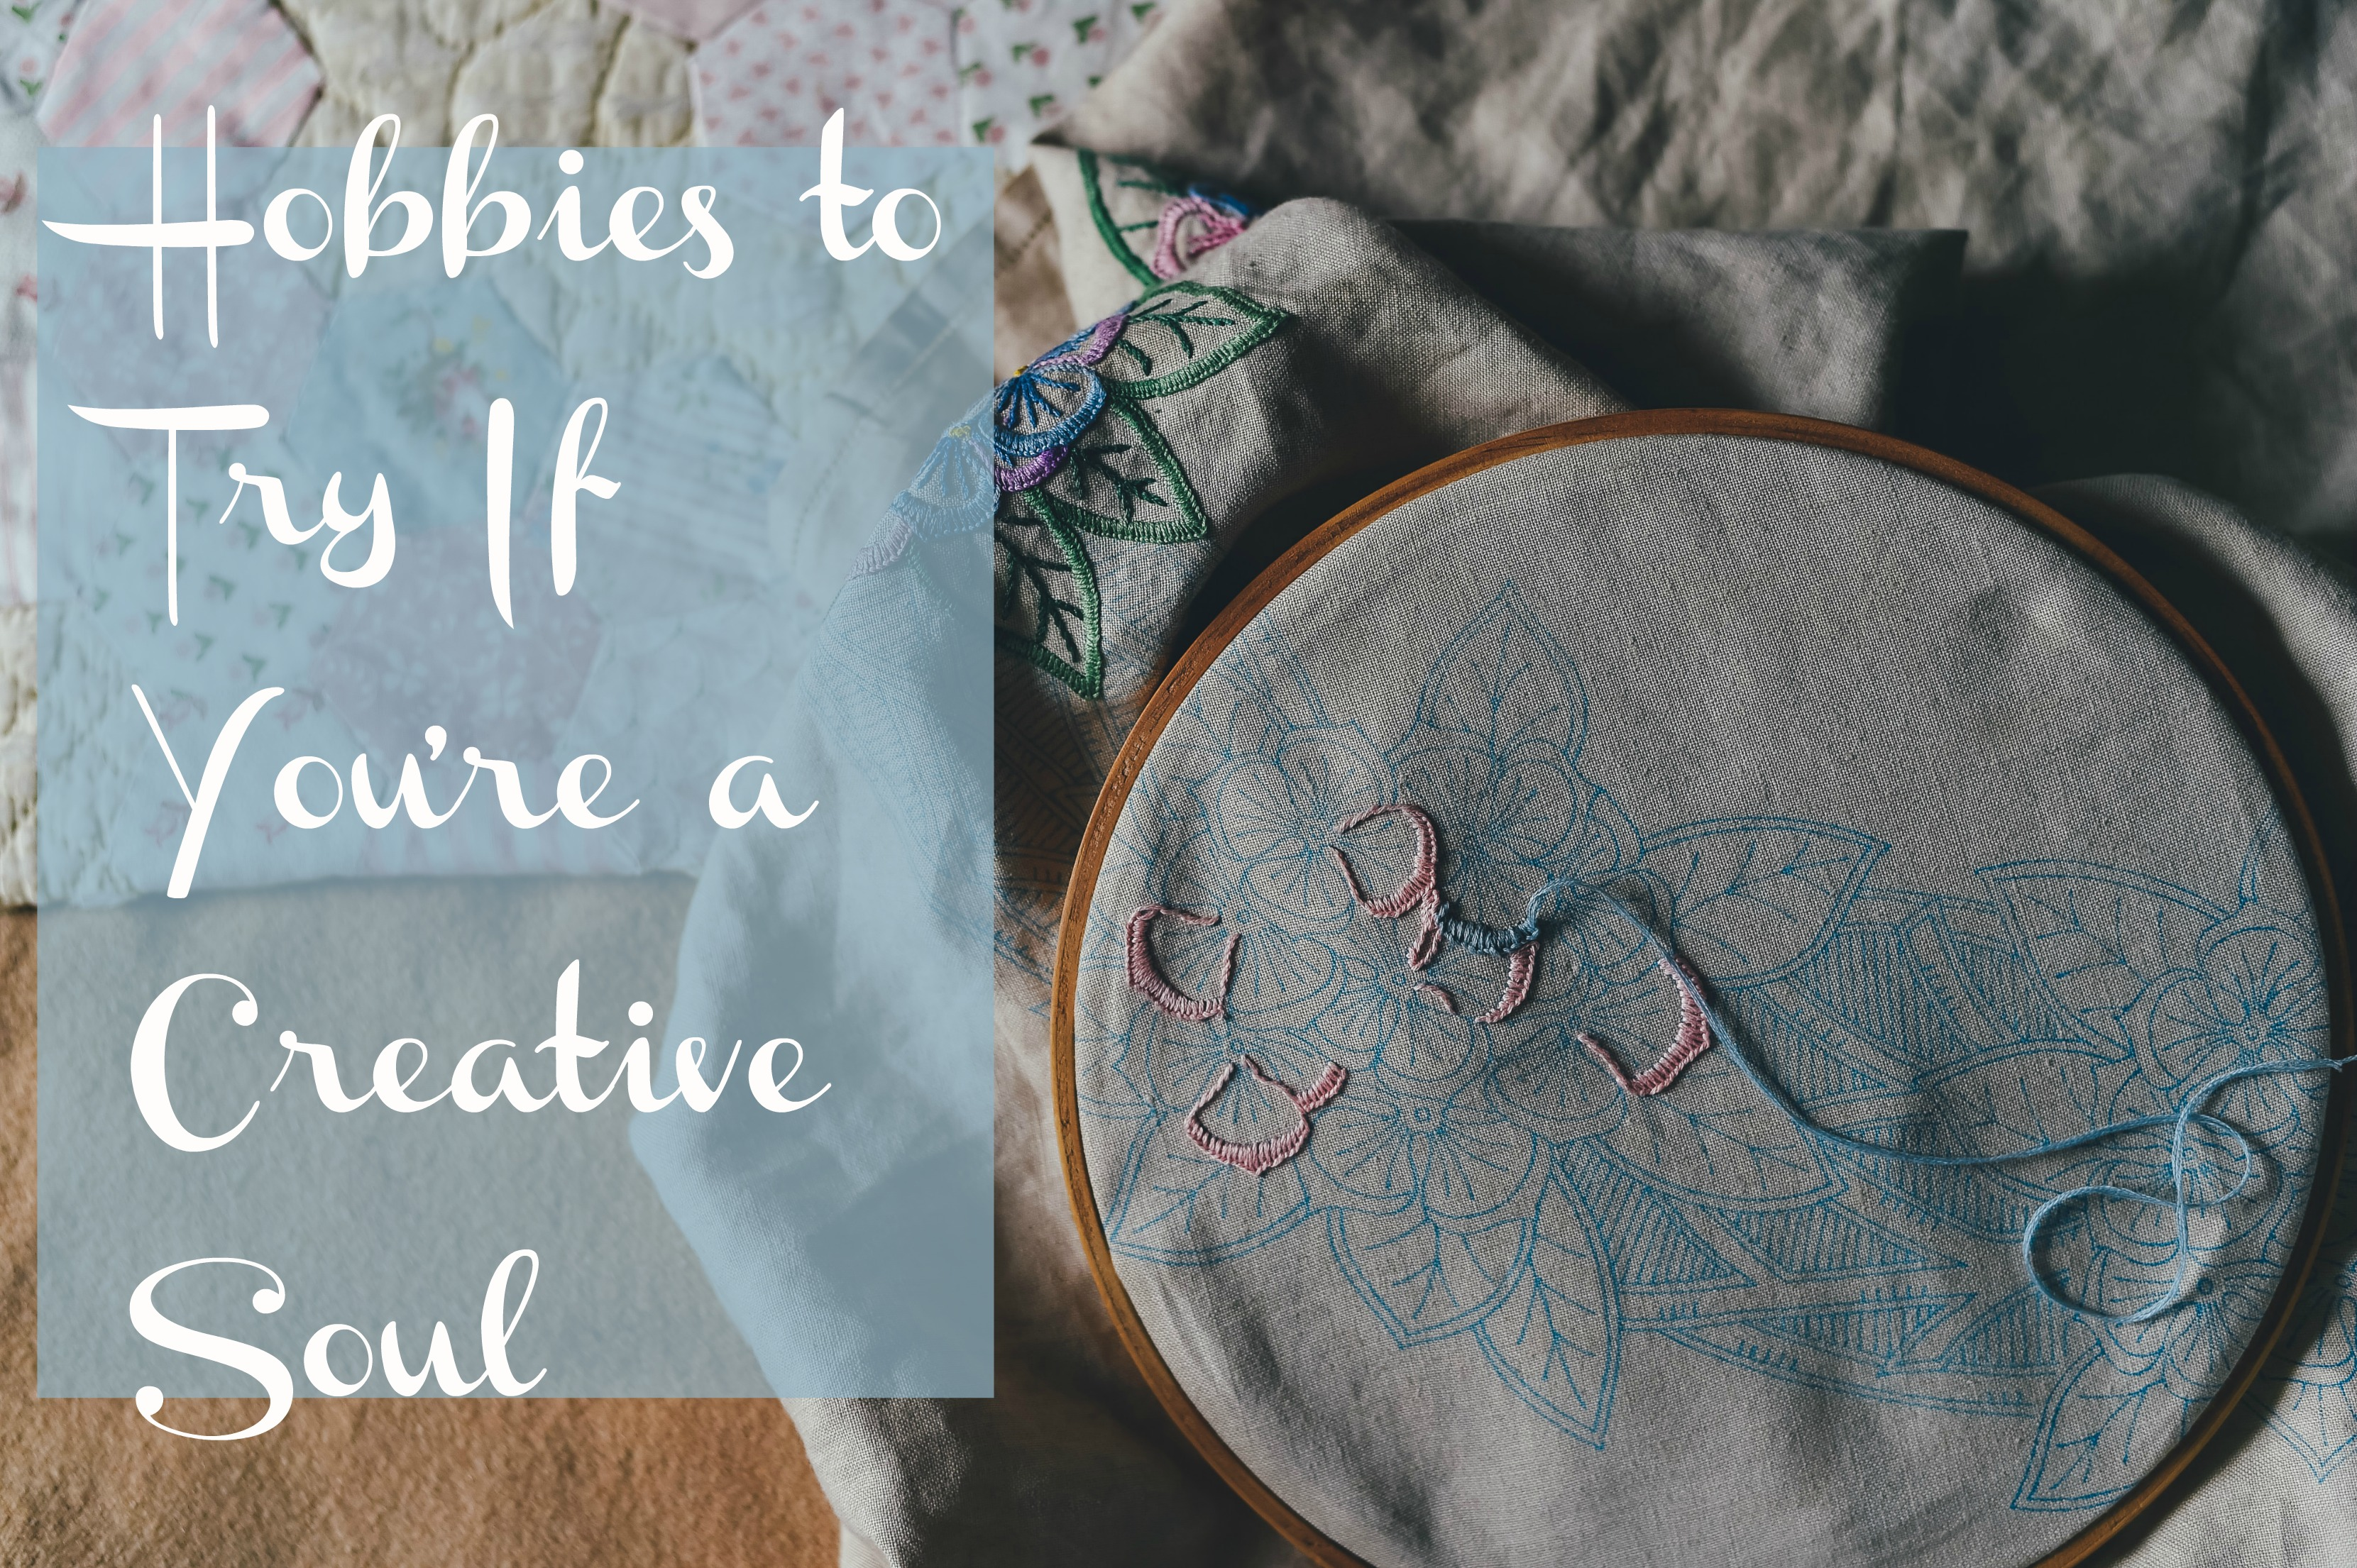 hobbies to try if you're a creative soul